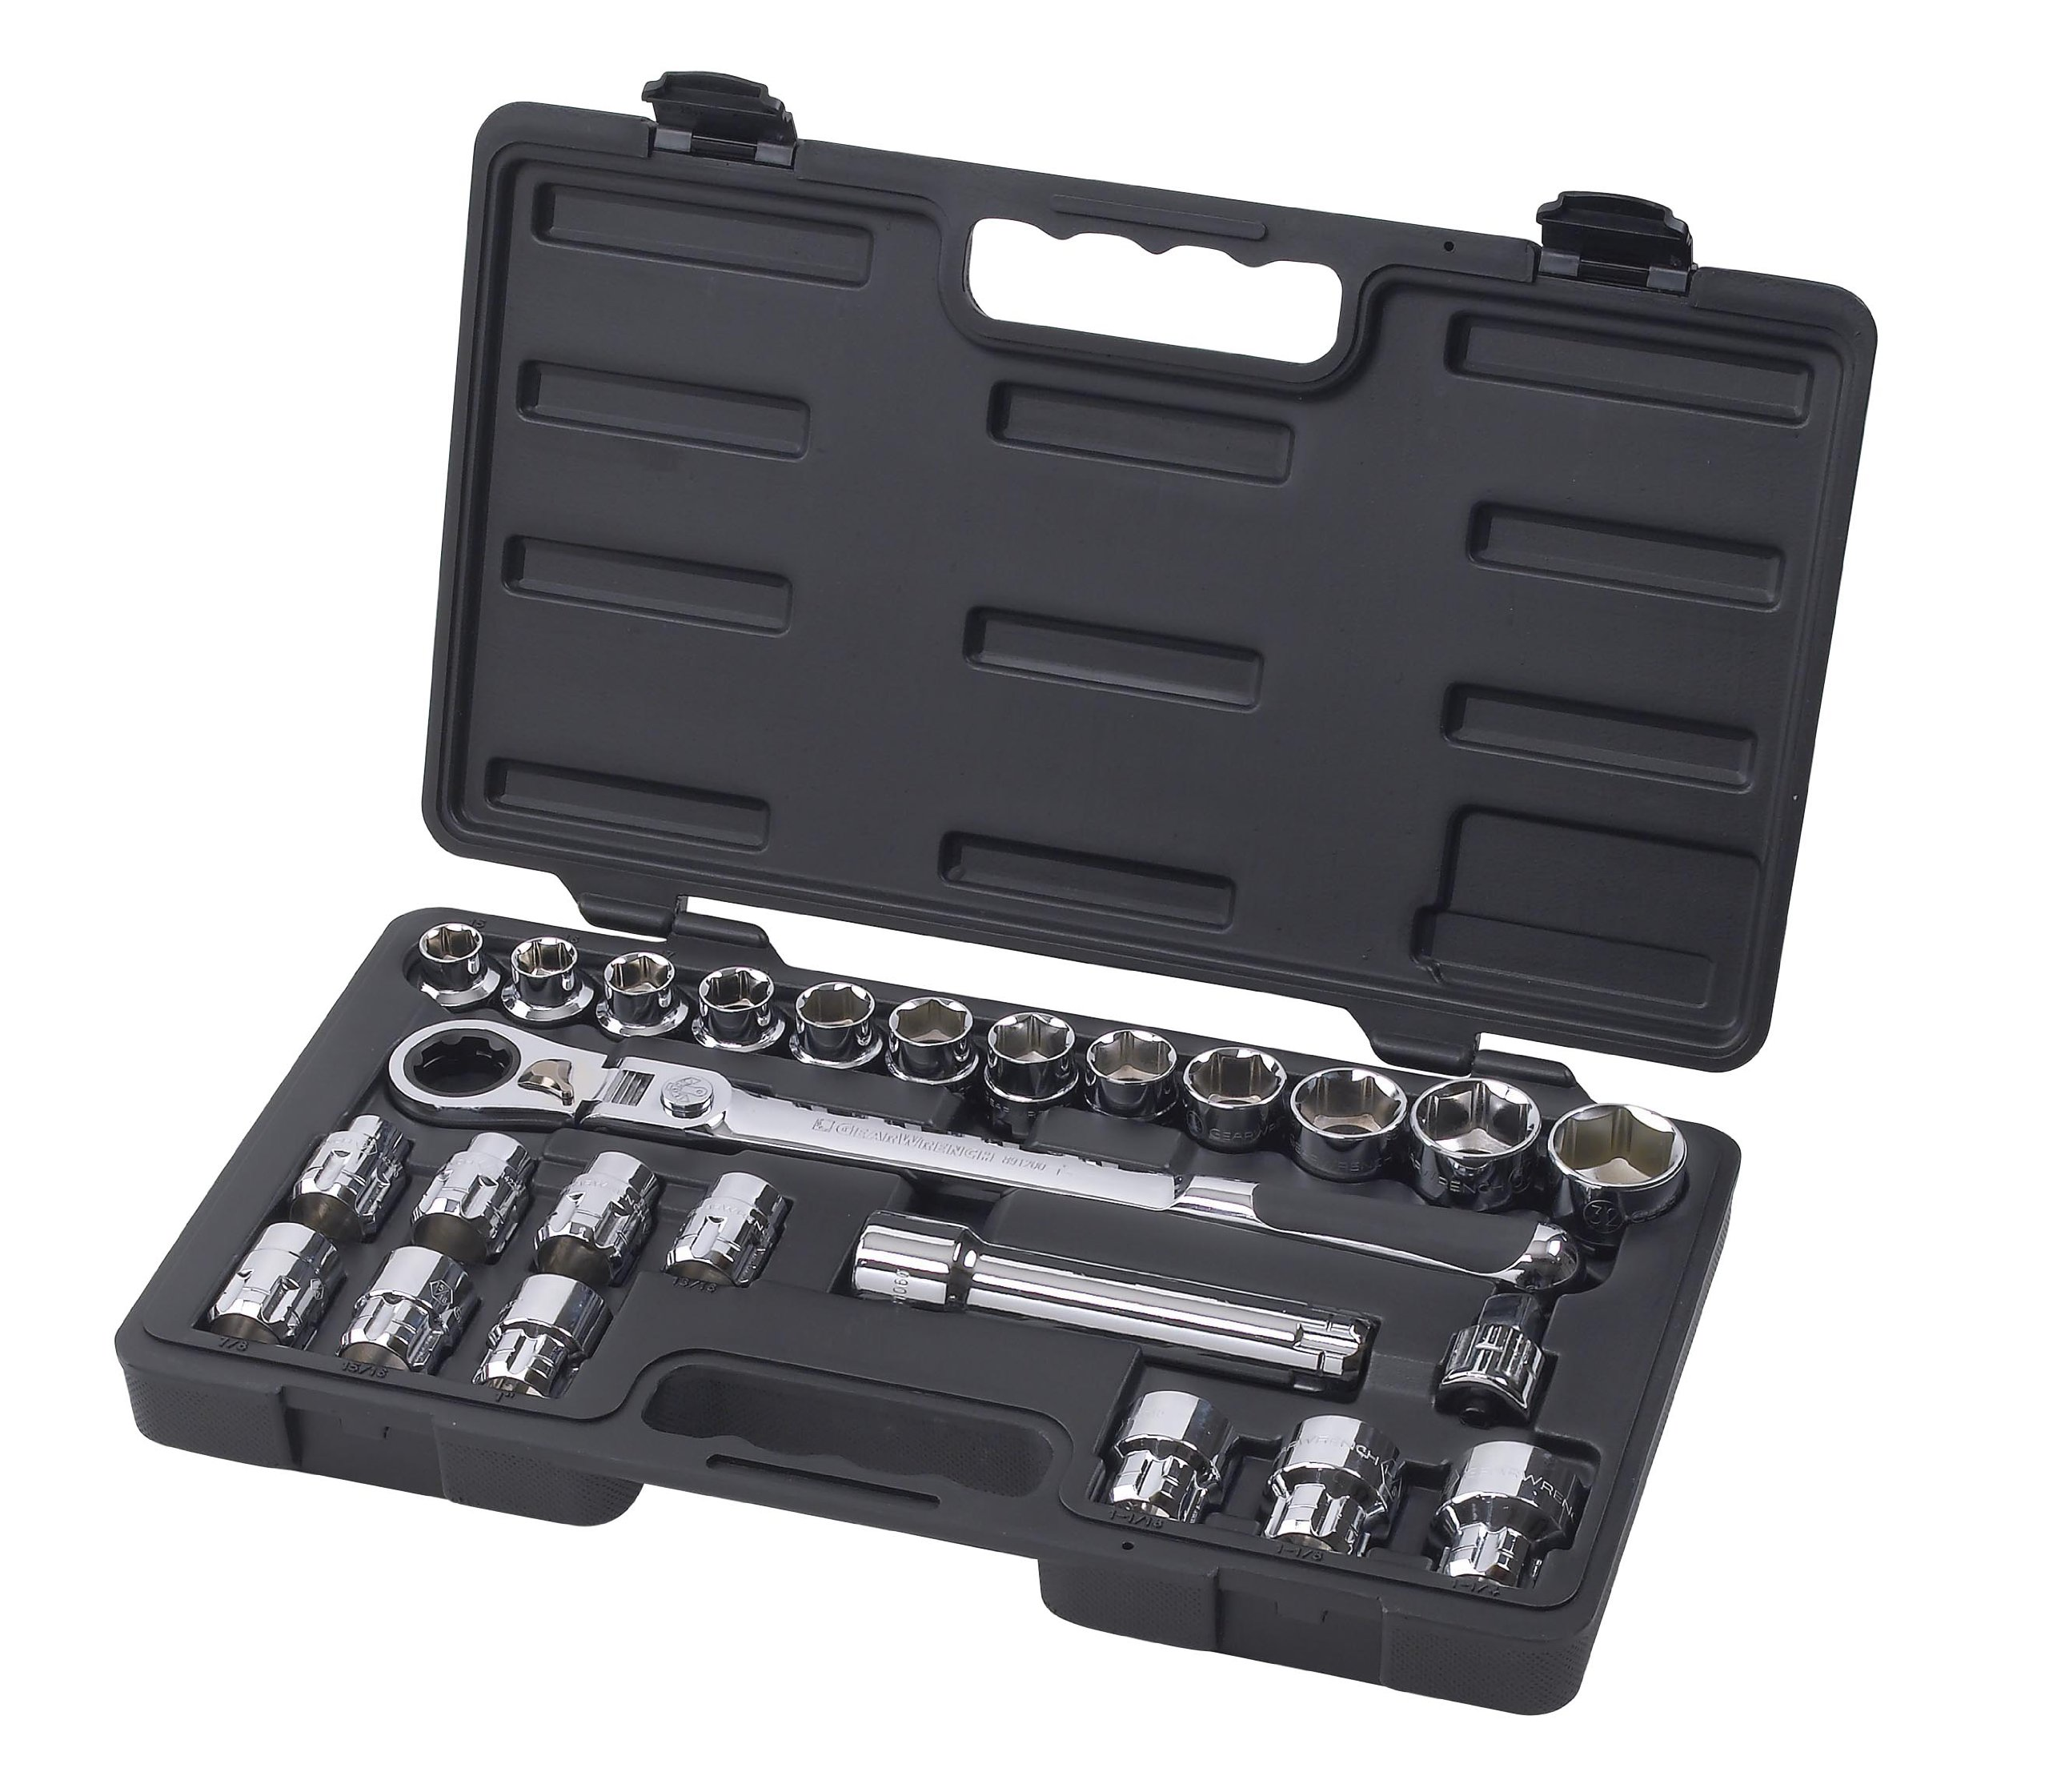 GEARWRENCH 891226 25 Piece 1/2-Inch Drive (30mm) Pass Thru Ratchet Set with Locking Flex-Head by GearWrench (Image #1)